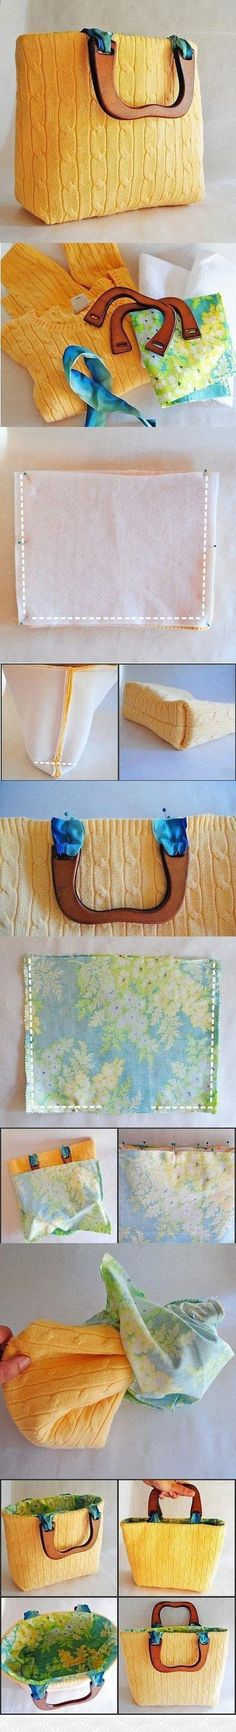 craft, fashion ideas, handbags, diy bags, tutorial, recycled sweaters, homes, tote bags, purses